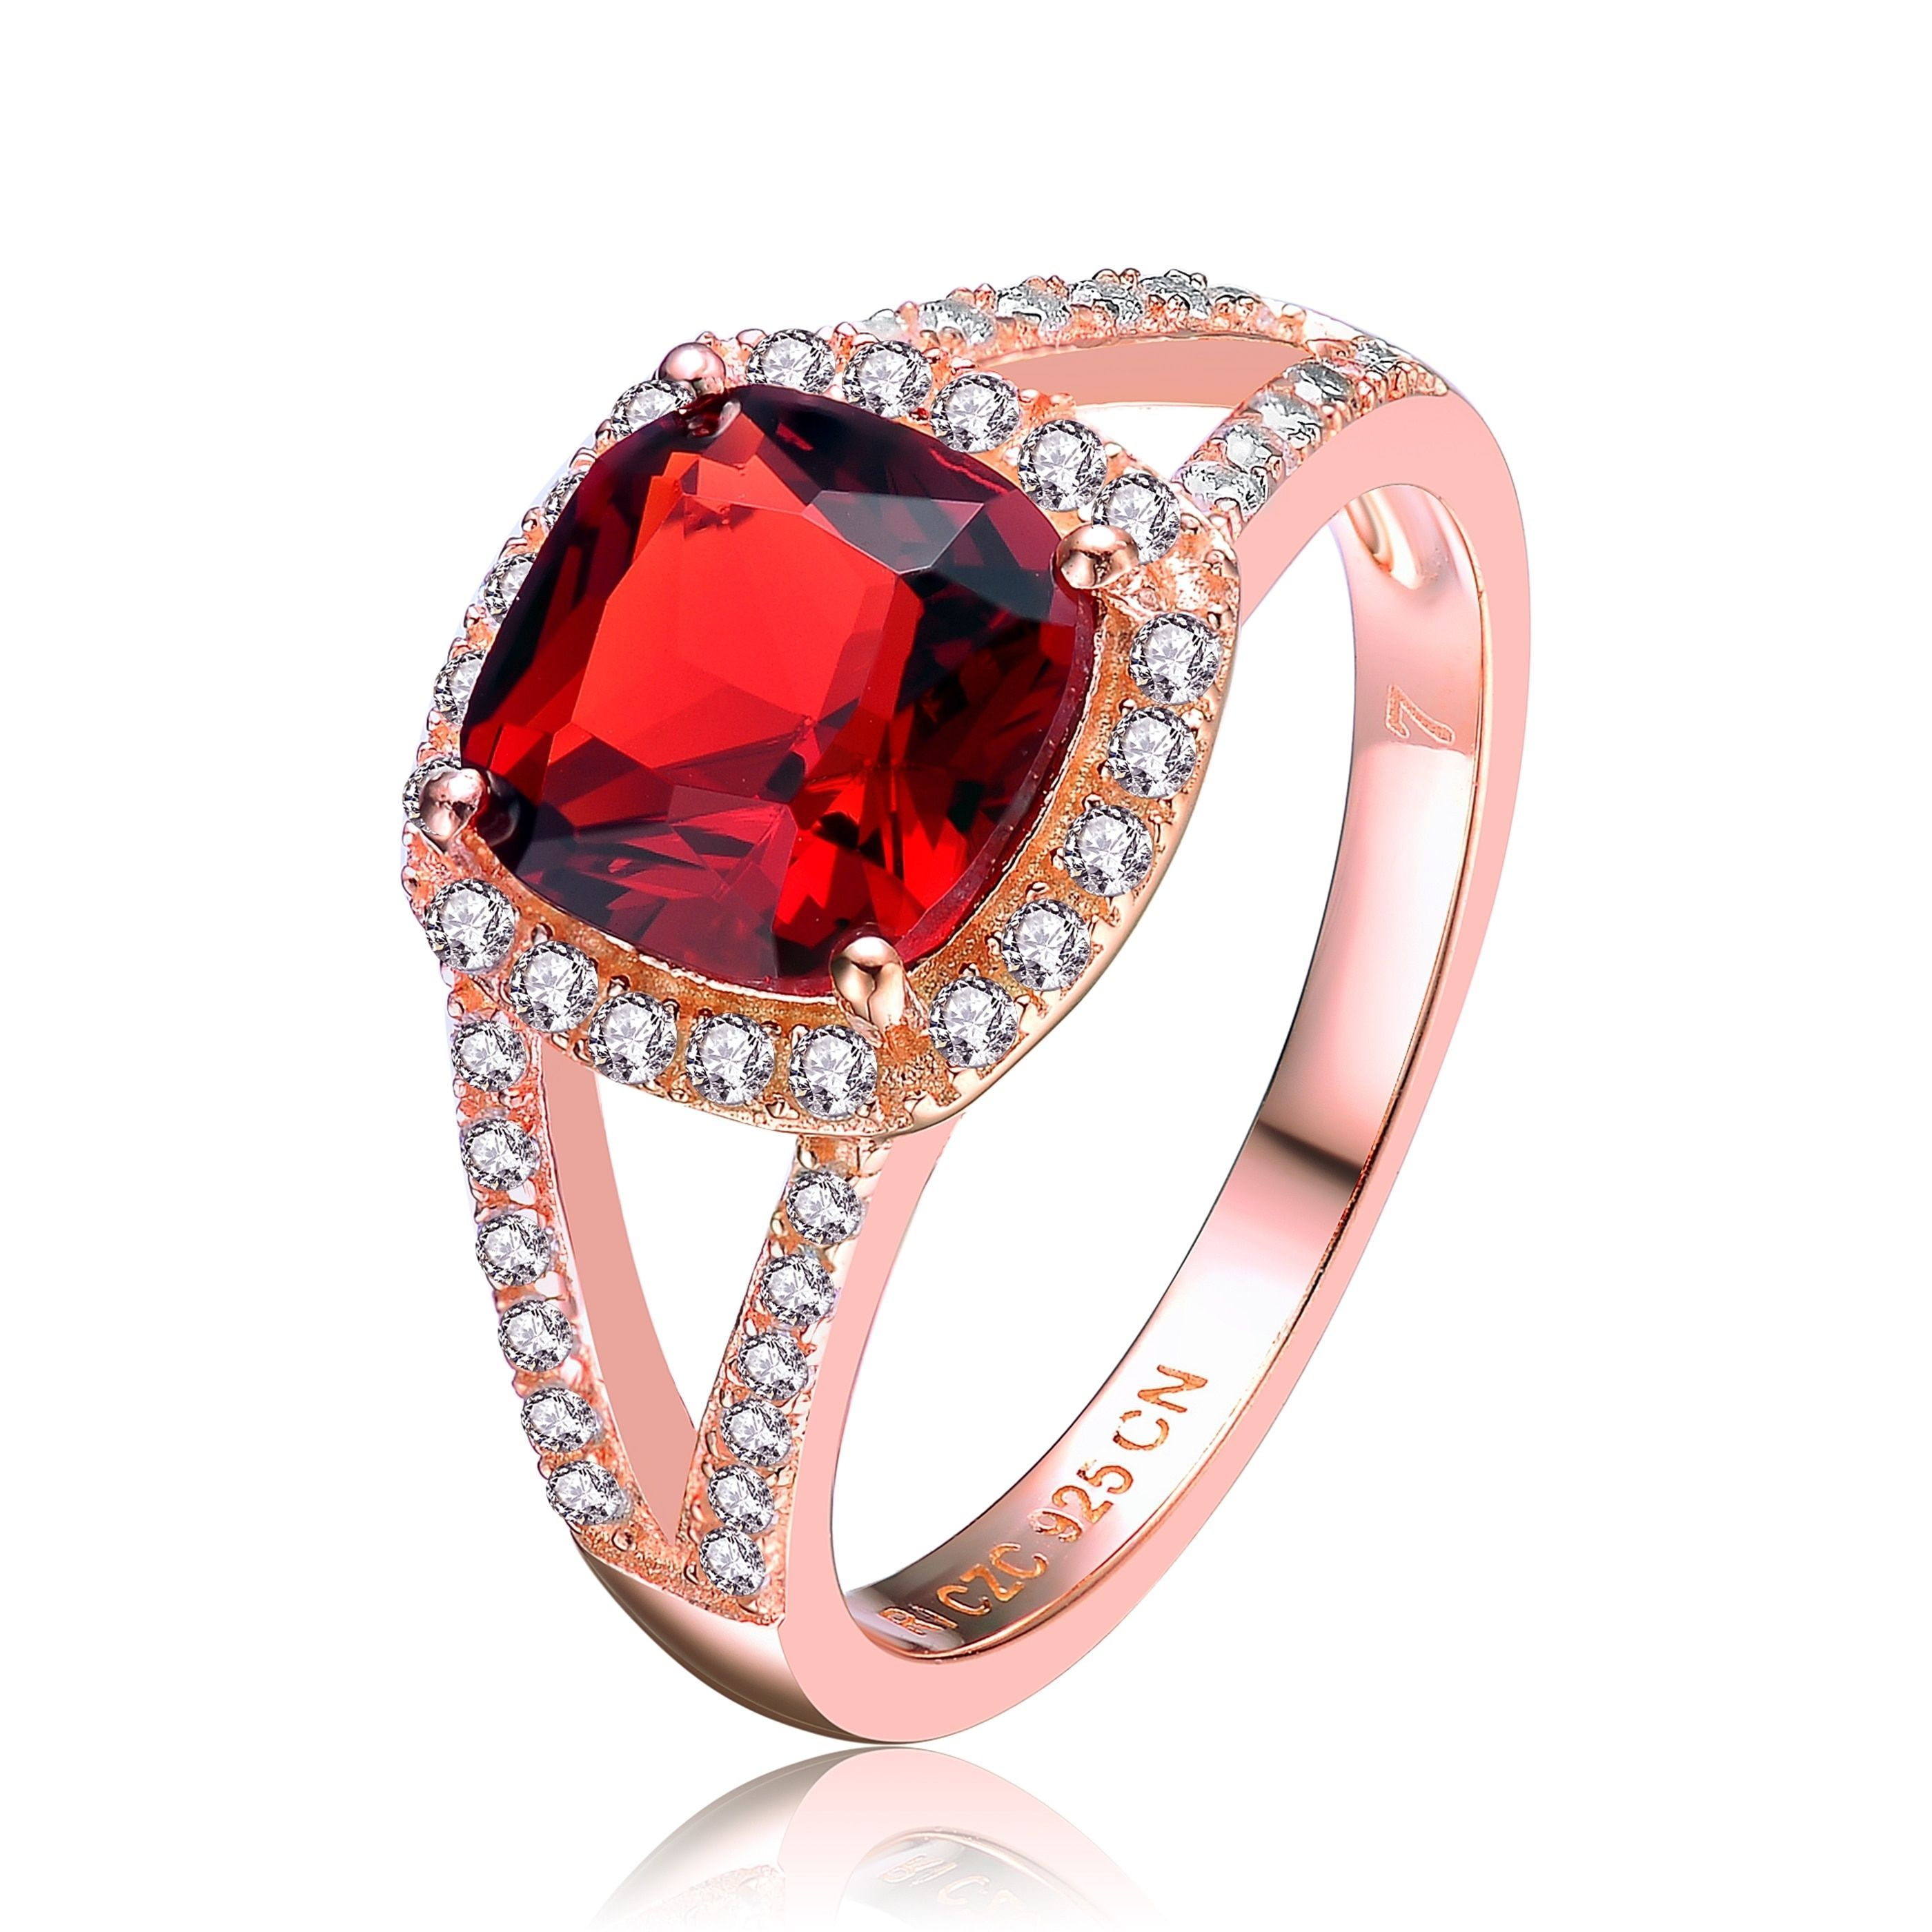 Collette Z Rose Gold Overlay Red Cubic Zirconia Statement Ring Size 6 (Size 8), Women's